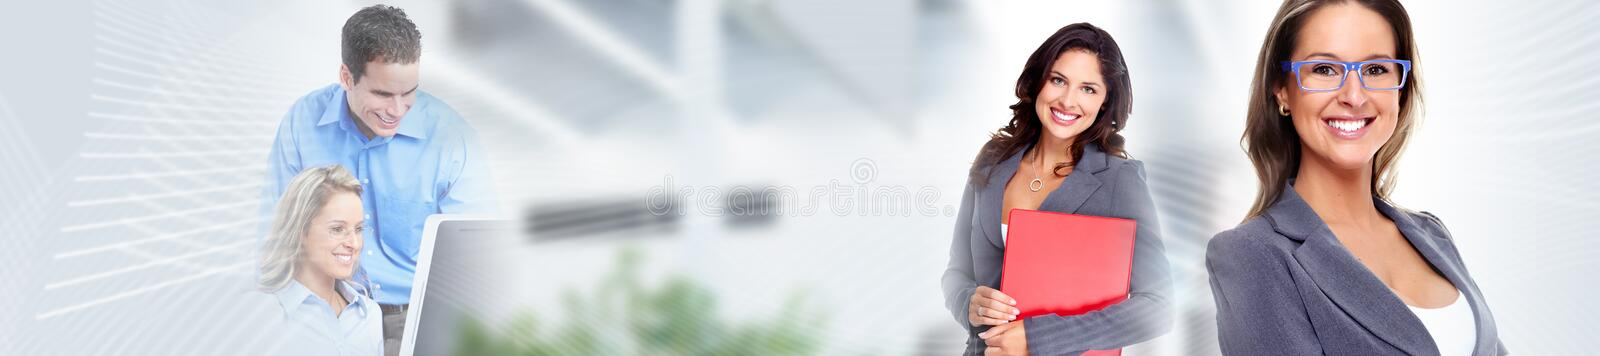 Business background. Business people group over abstract financial background stock images